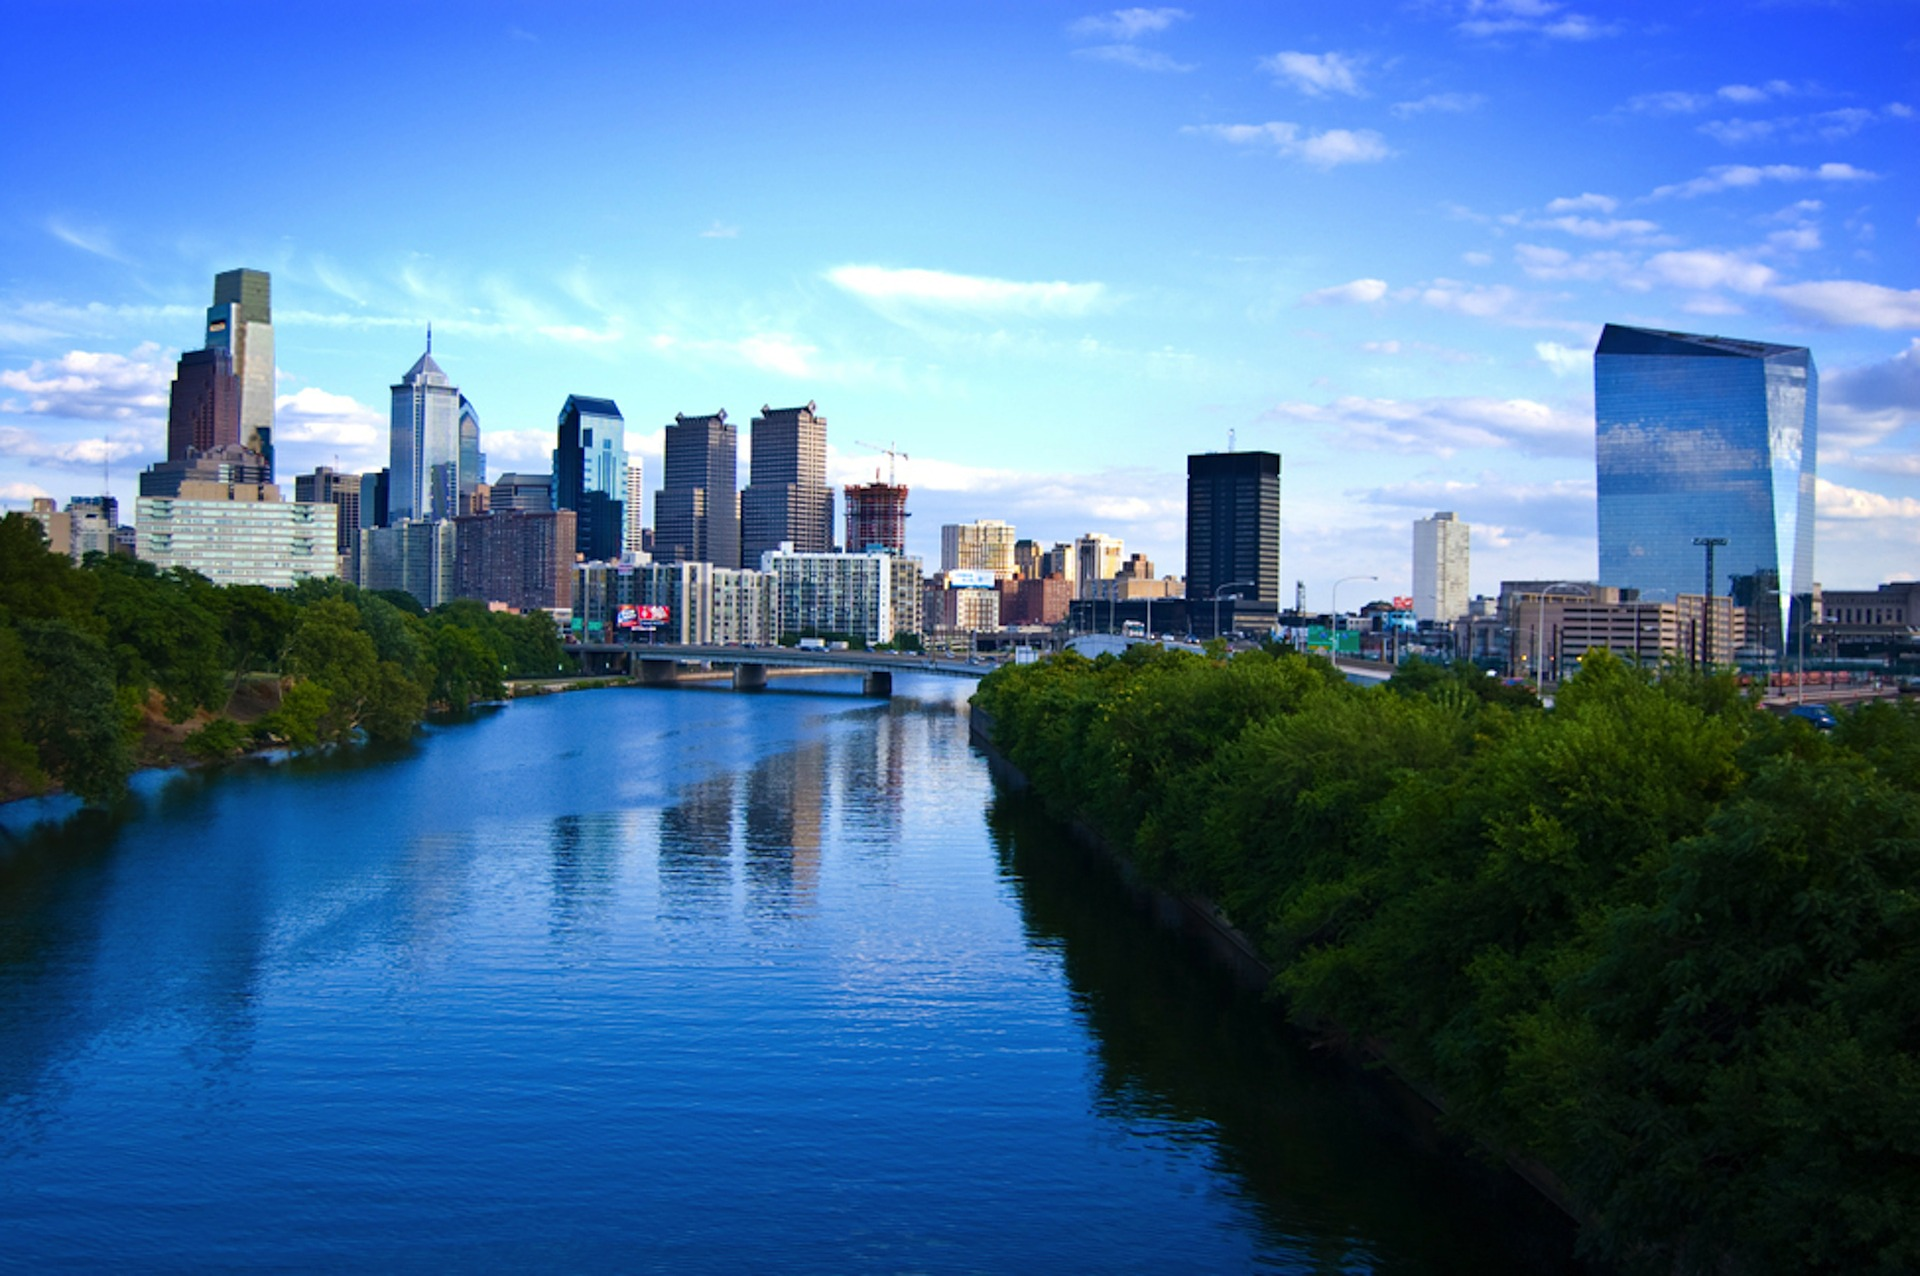 - A cost-benefit assessment in Philadelphia found that using green infrastructure to manage 50% of runoff in the city would provide over $2.8 billion in city wide benefits (recreation, property value, water & air quality improvements) through 2049, including $170 million in reduced costs associated with combined sewer overflows.